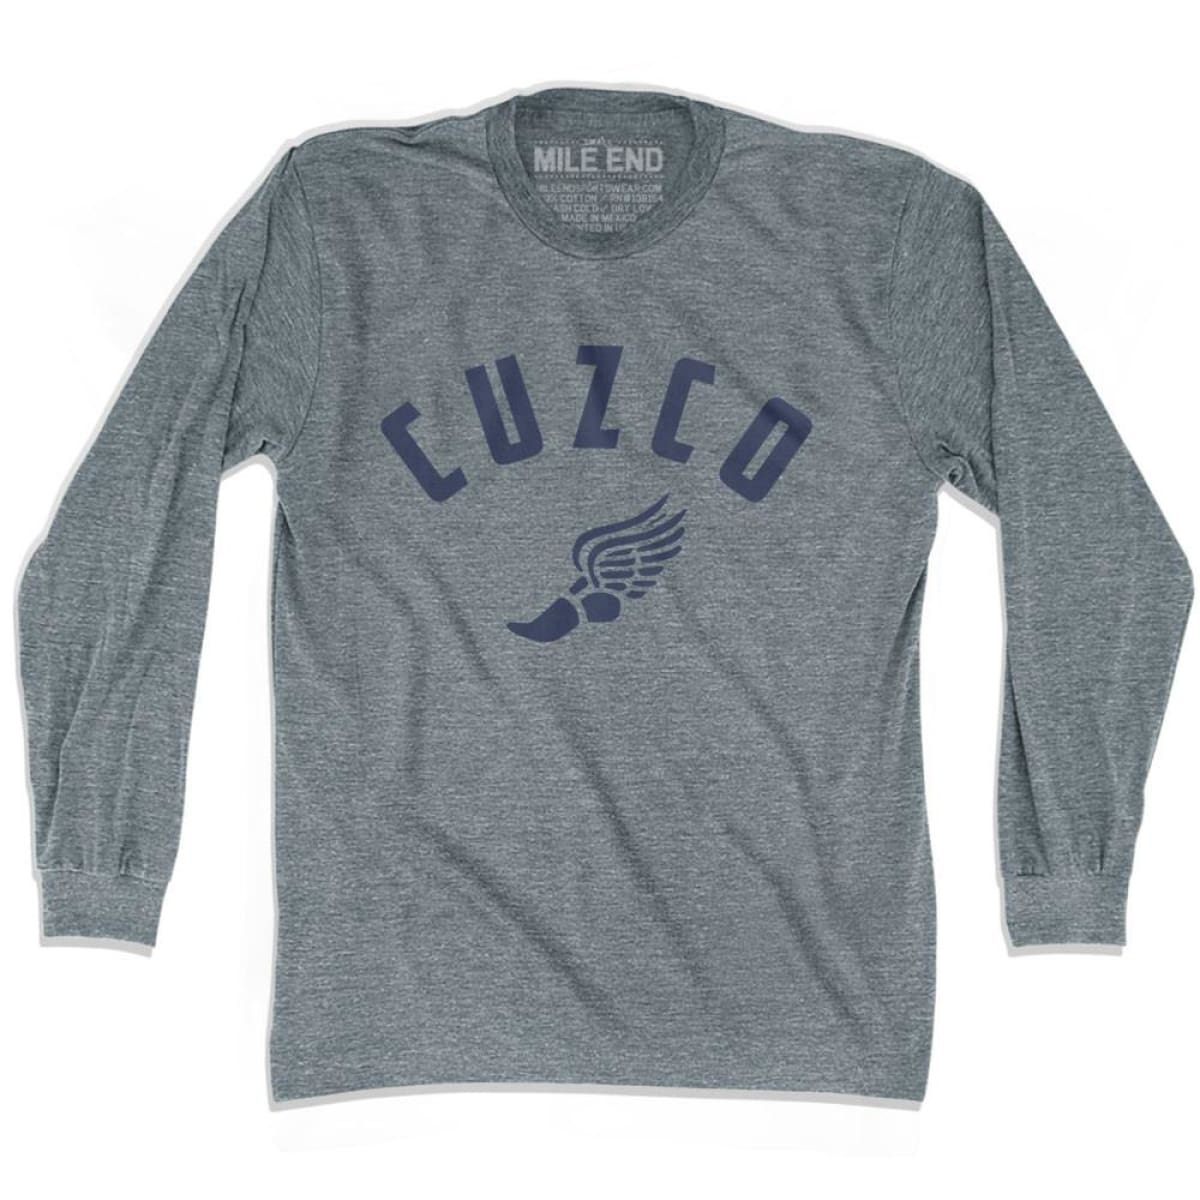 Cuzco Track Long Sleeve T-shirt - Athletic Grey / Adult X-Small - Mile End Track